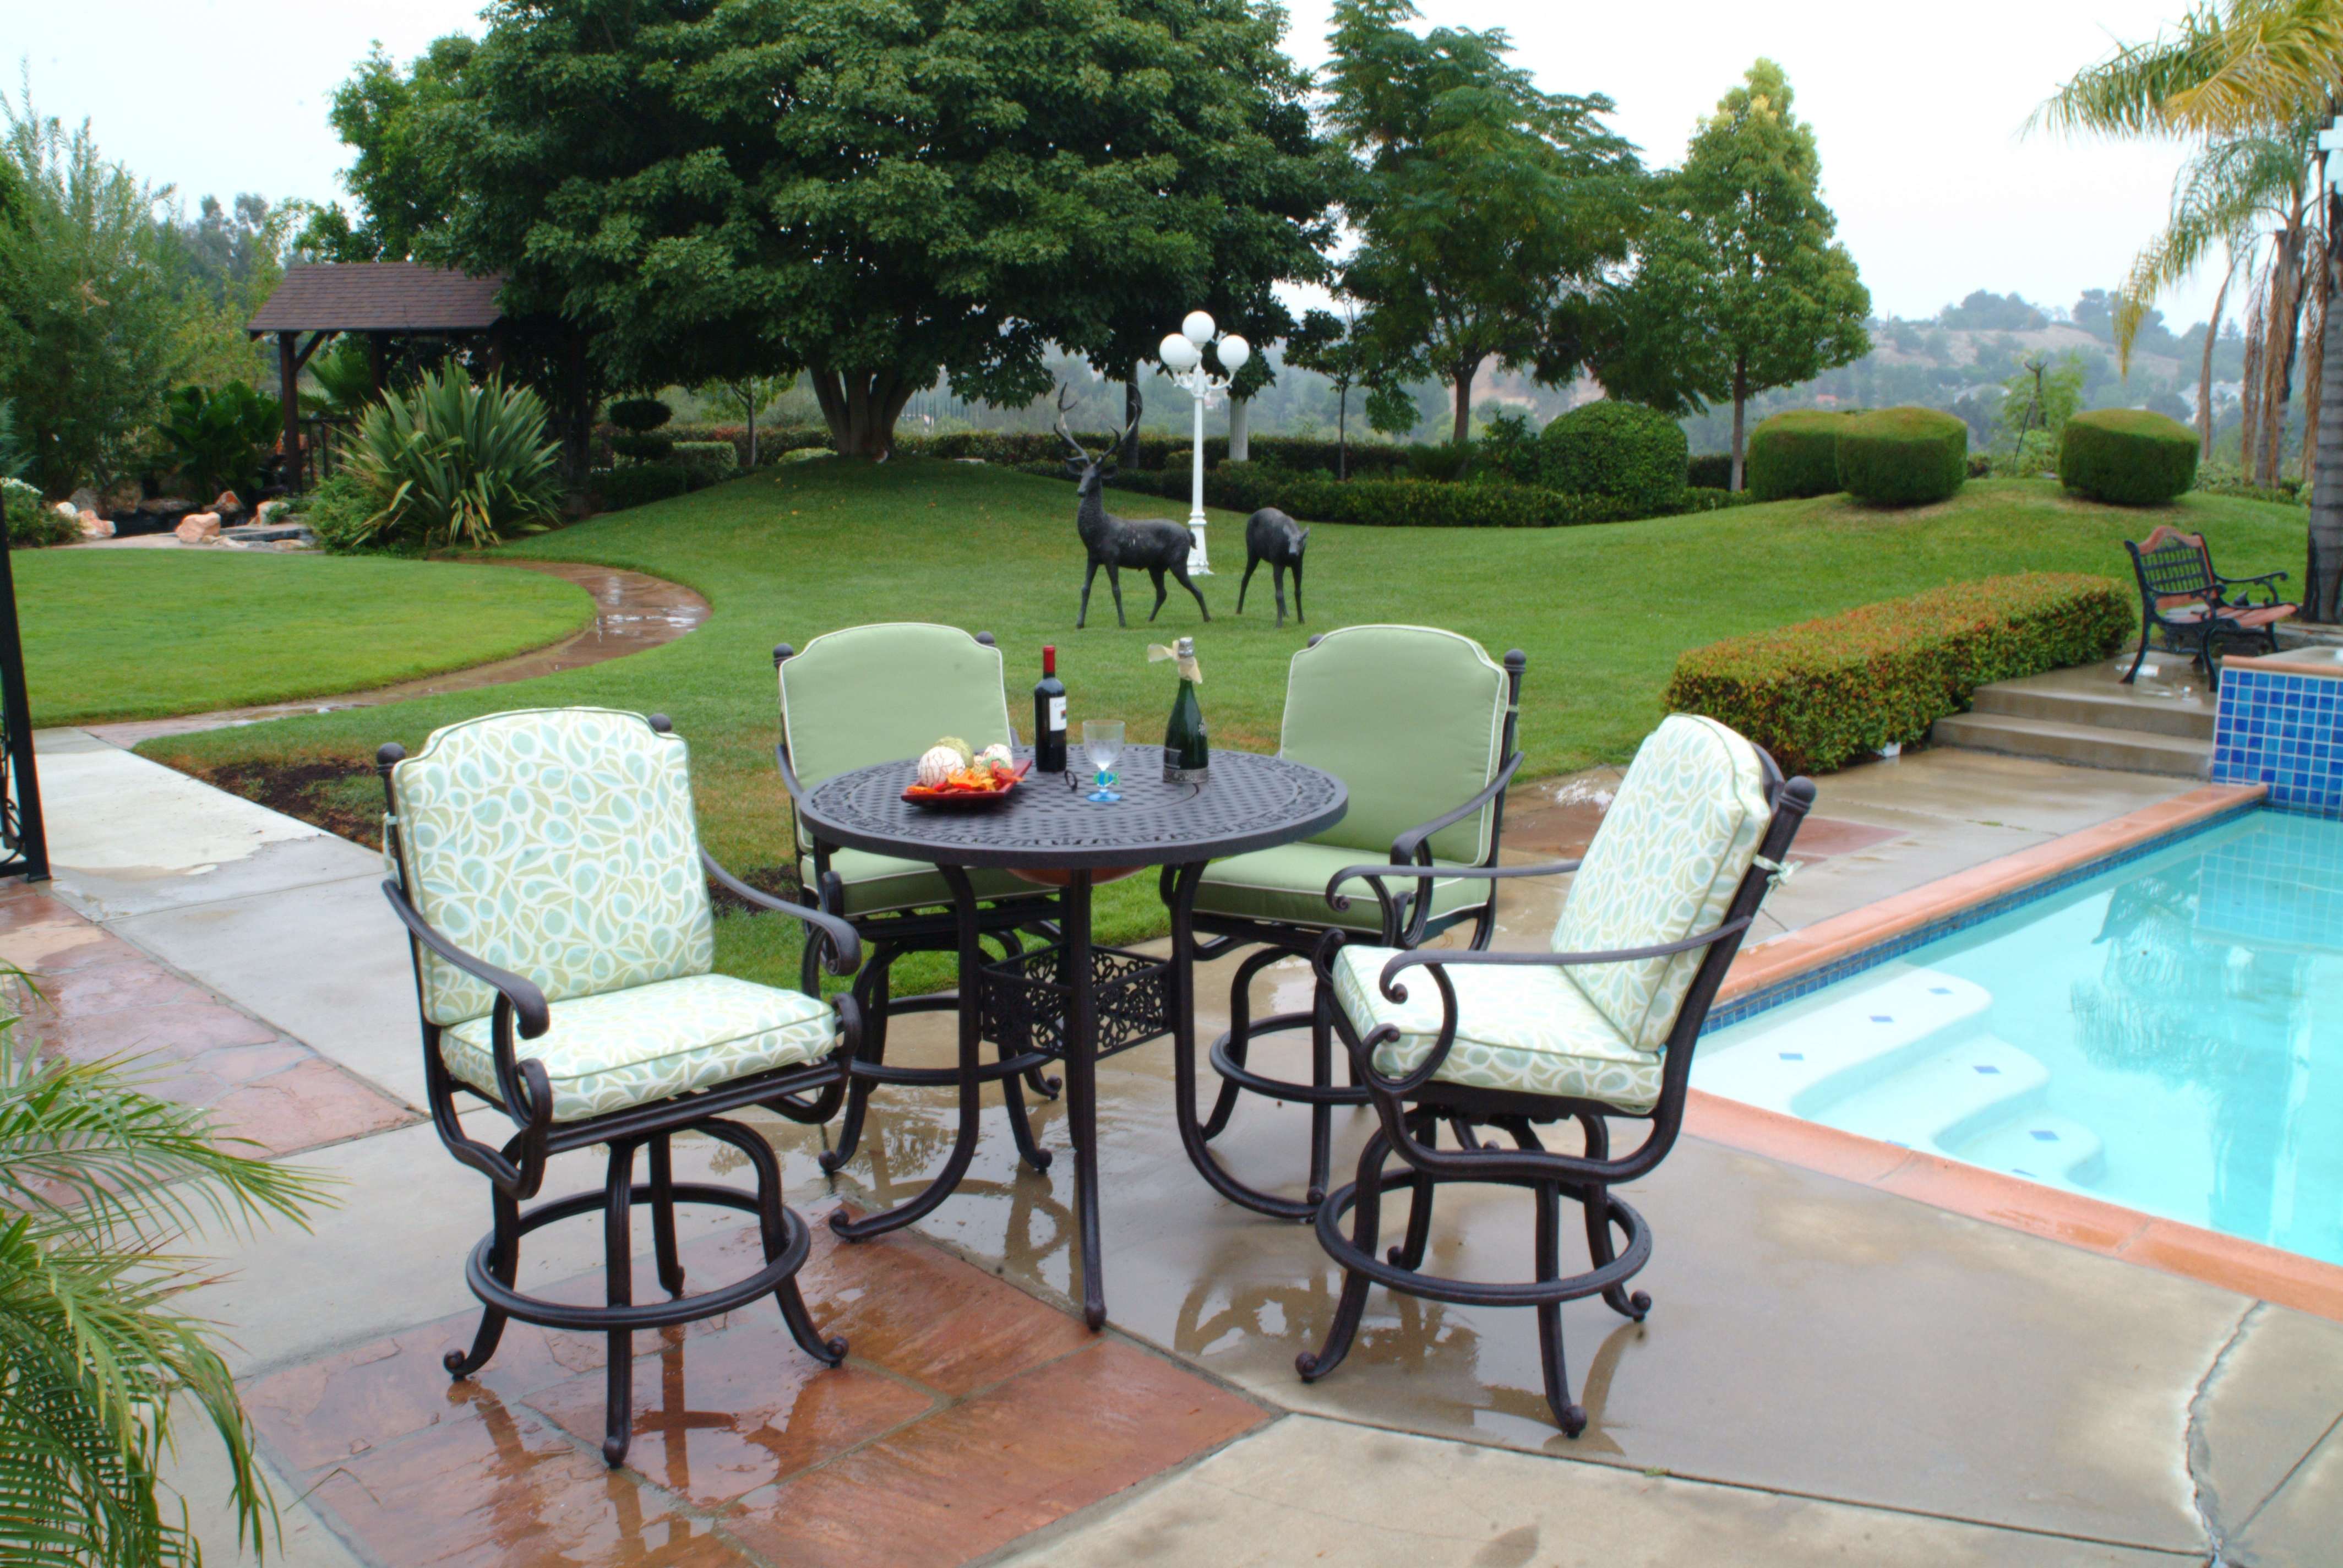 Athena Bar Set With Round Table Las Vegas Outdoor Kitchens And Barbecues